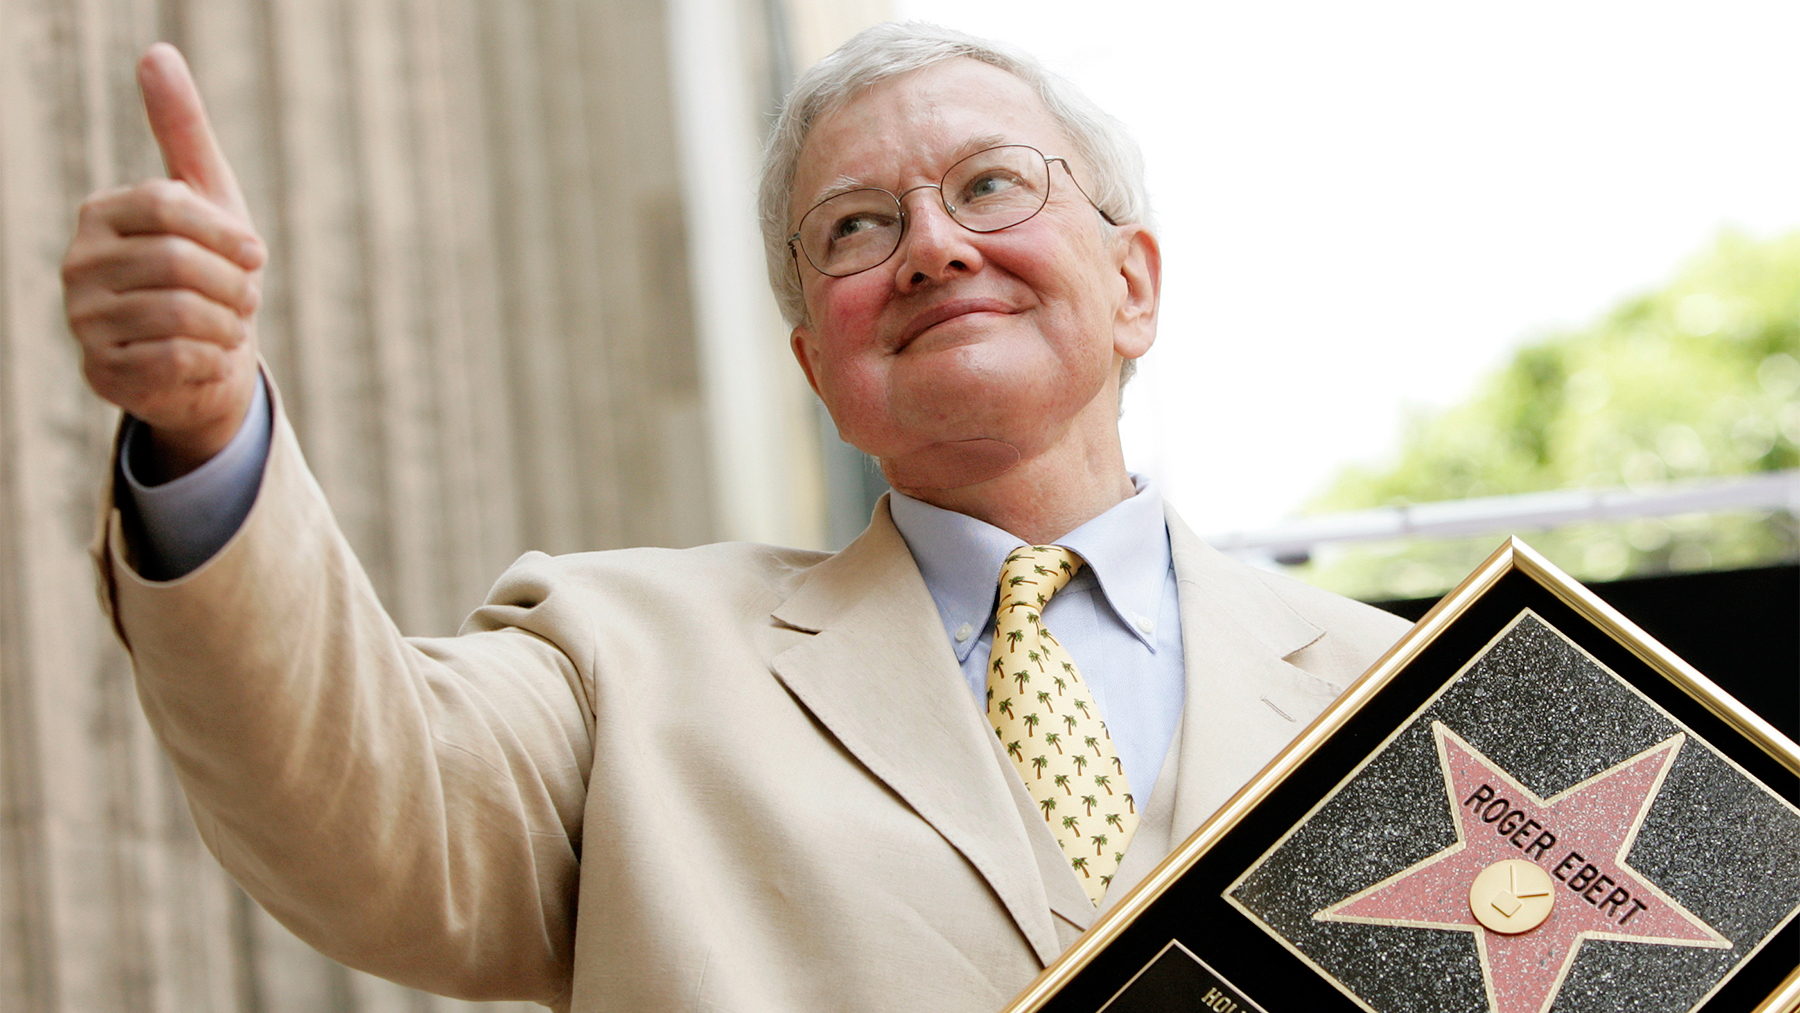 Roger Ebert at ceremony celebrating his star on the Hollywood Walk of Fame. Photo by Thompson Reuters